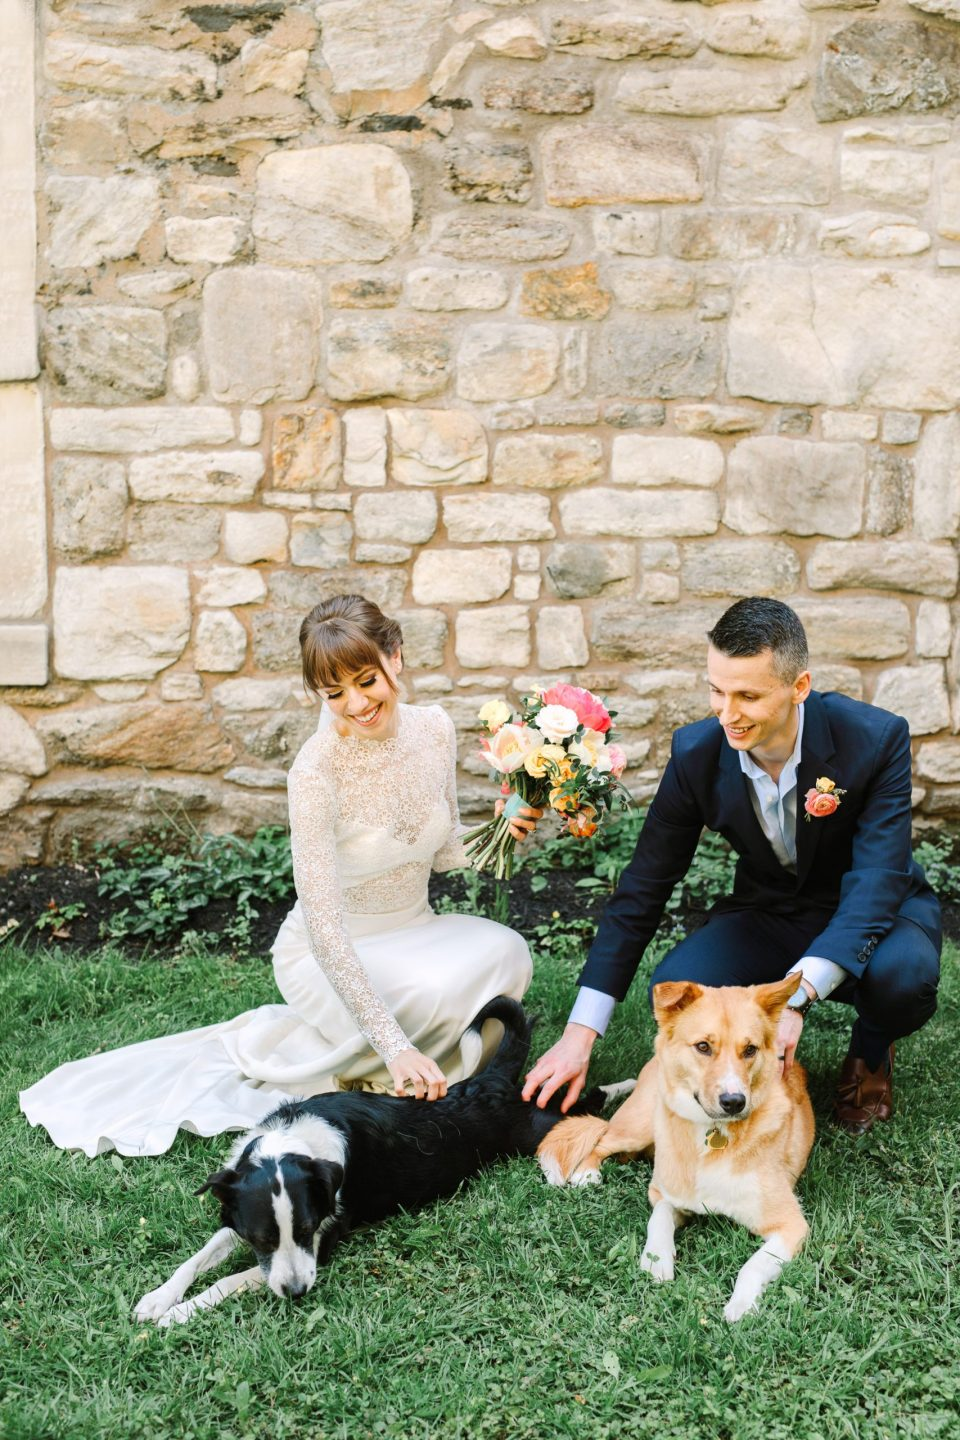 Bride and groom with their dogs - www.marycostaweddings.com